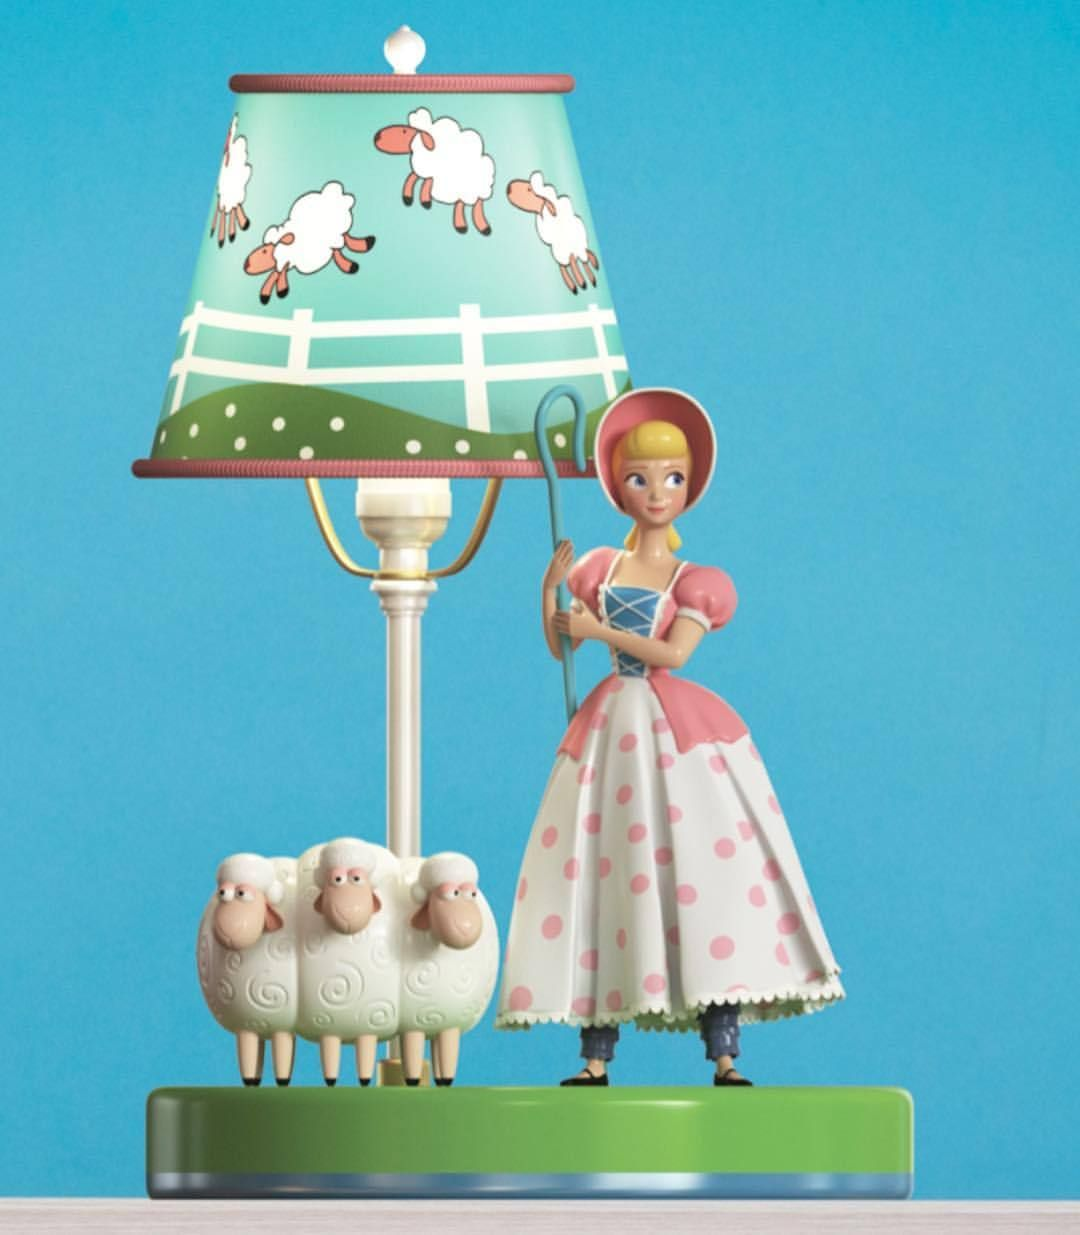 Mmdisney200 Look At Bo Peep This Is A Toy Story Lamp Coming Bo Peep Toy Story Toy Story Baby Toy Story